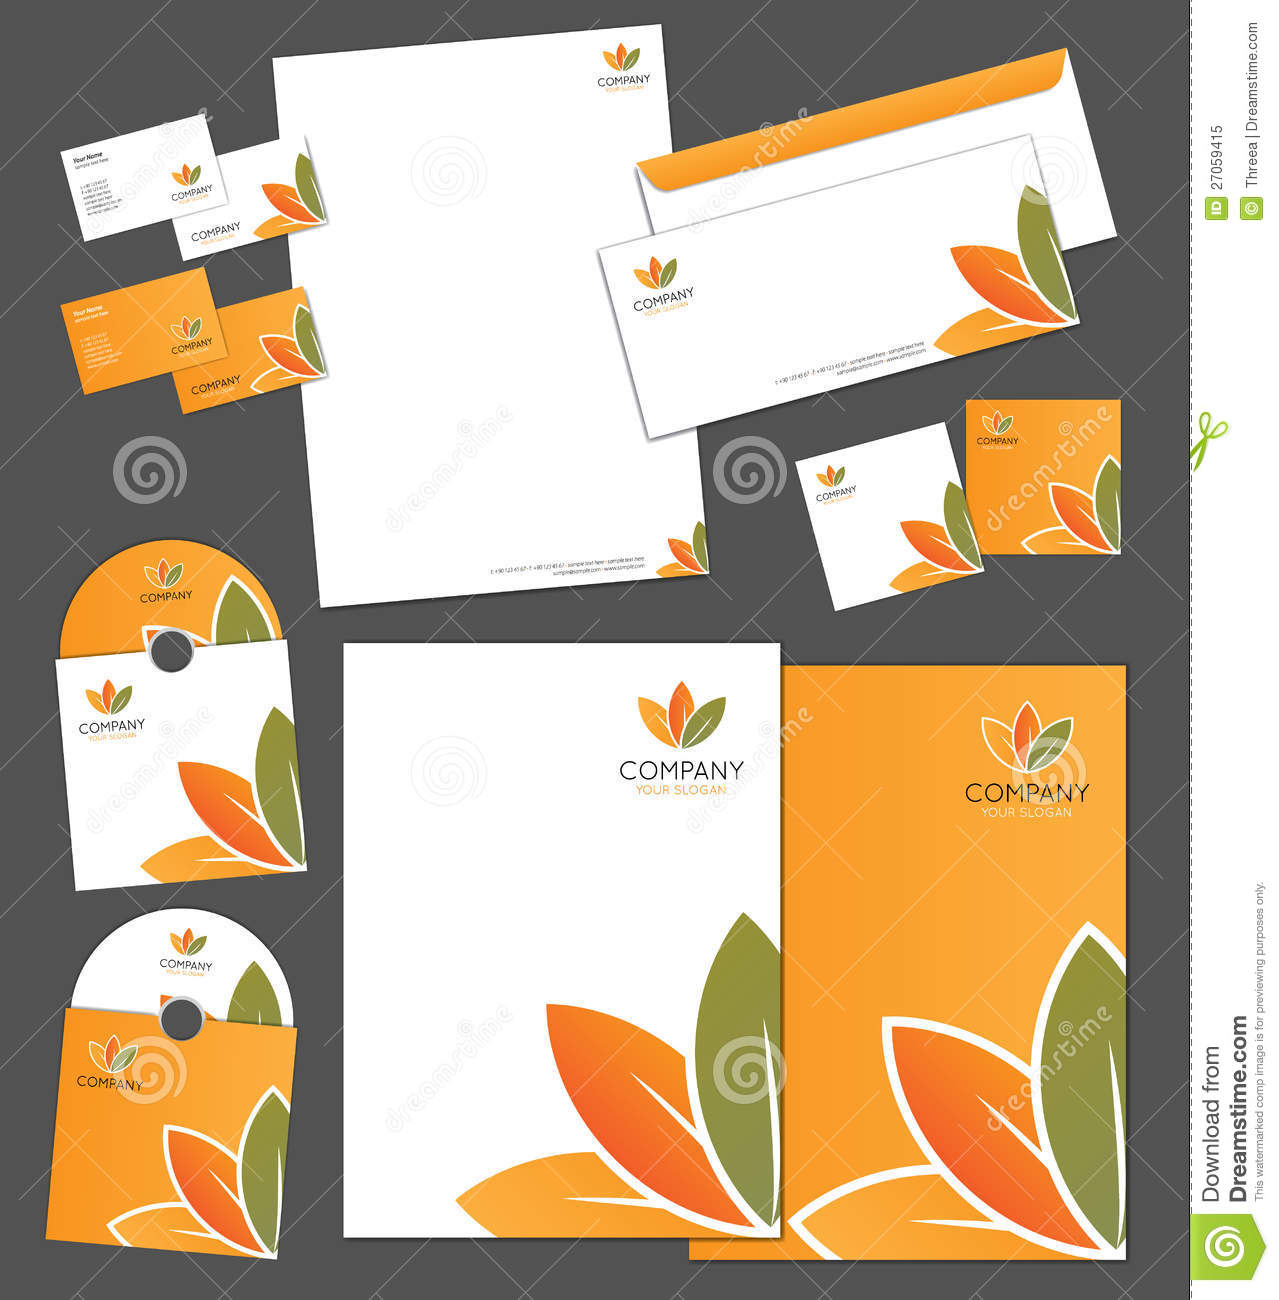 corporate identity template royalty free stock photo image 27059415